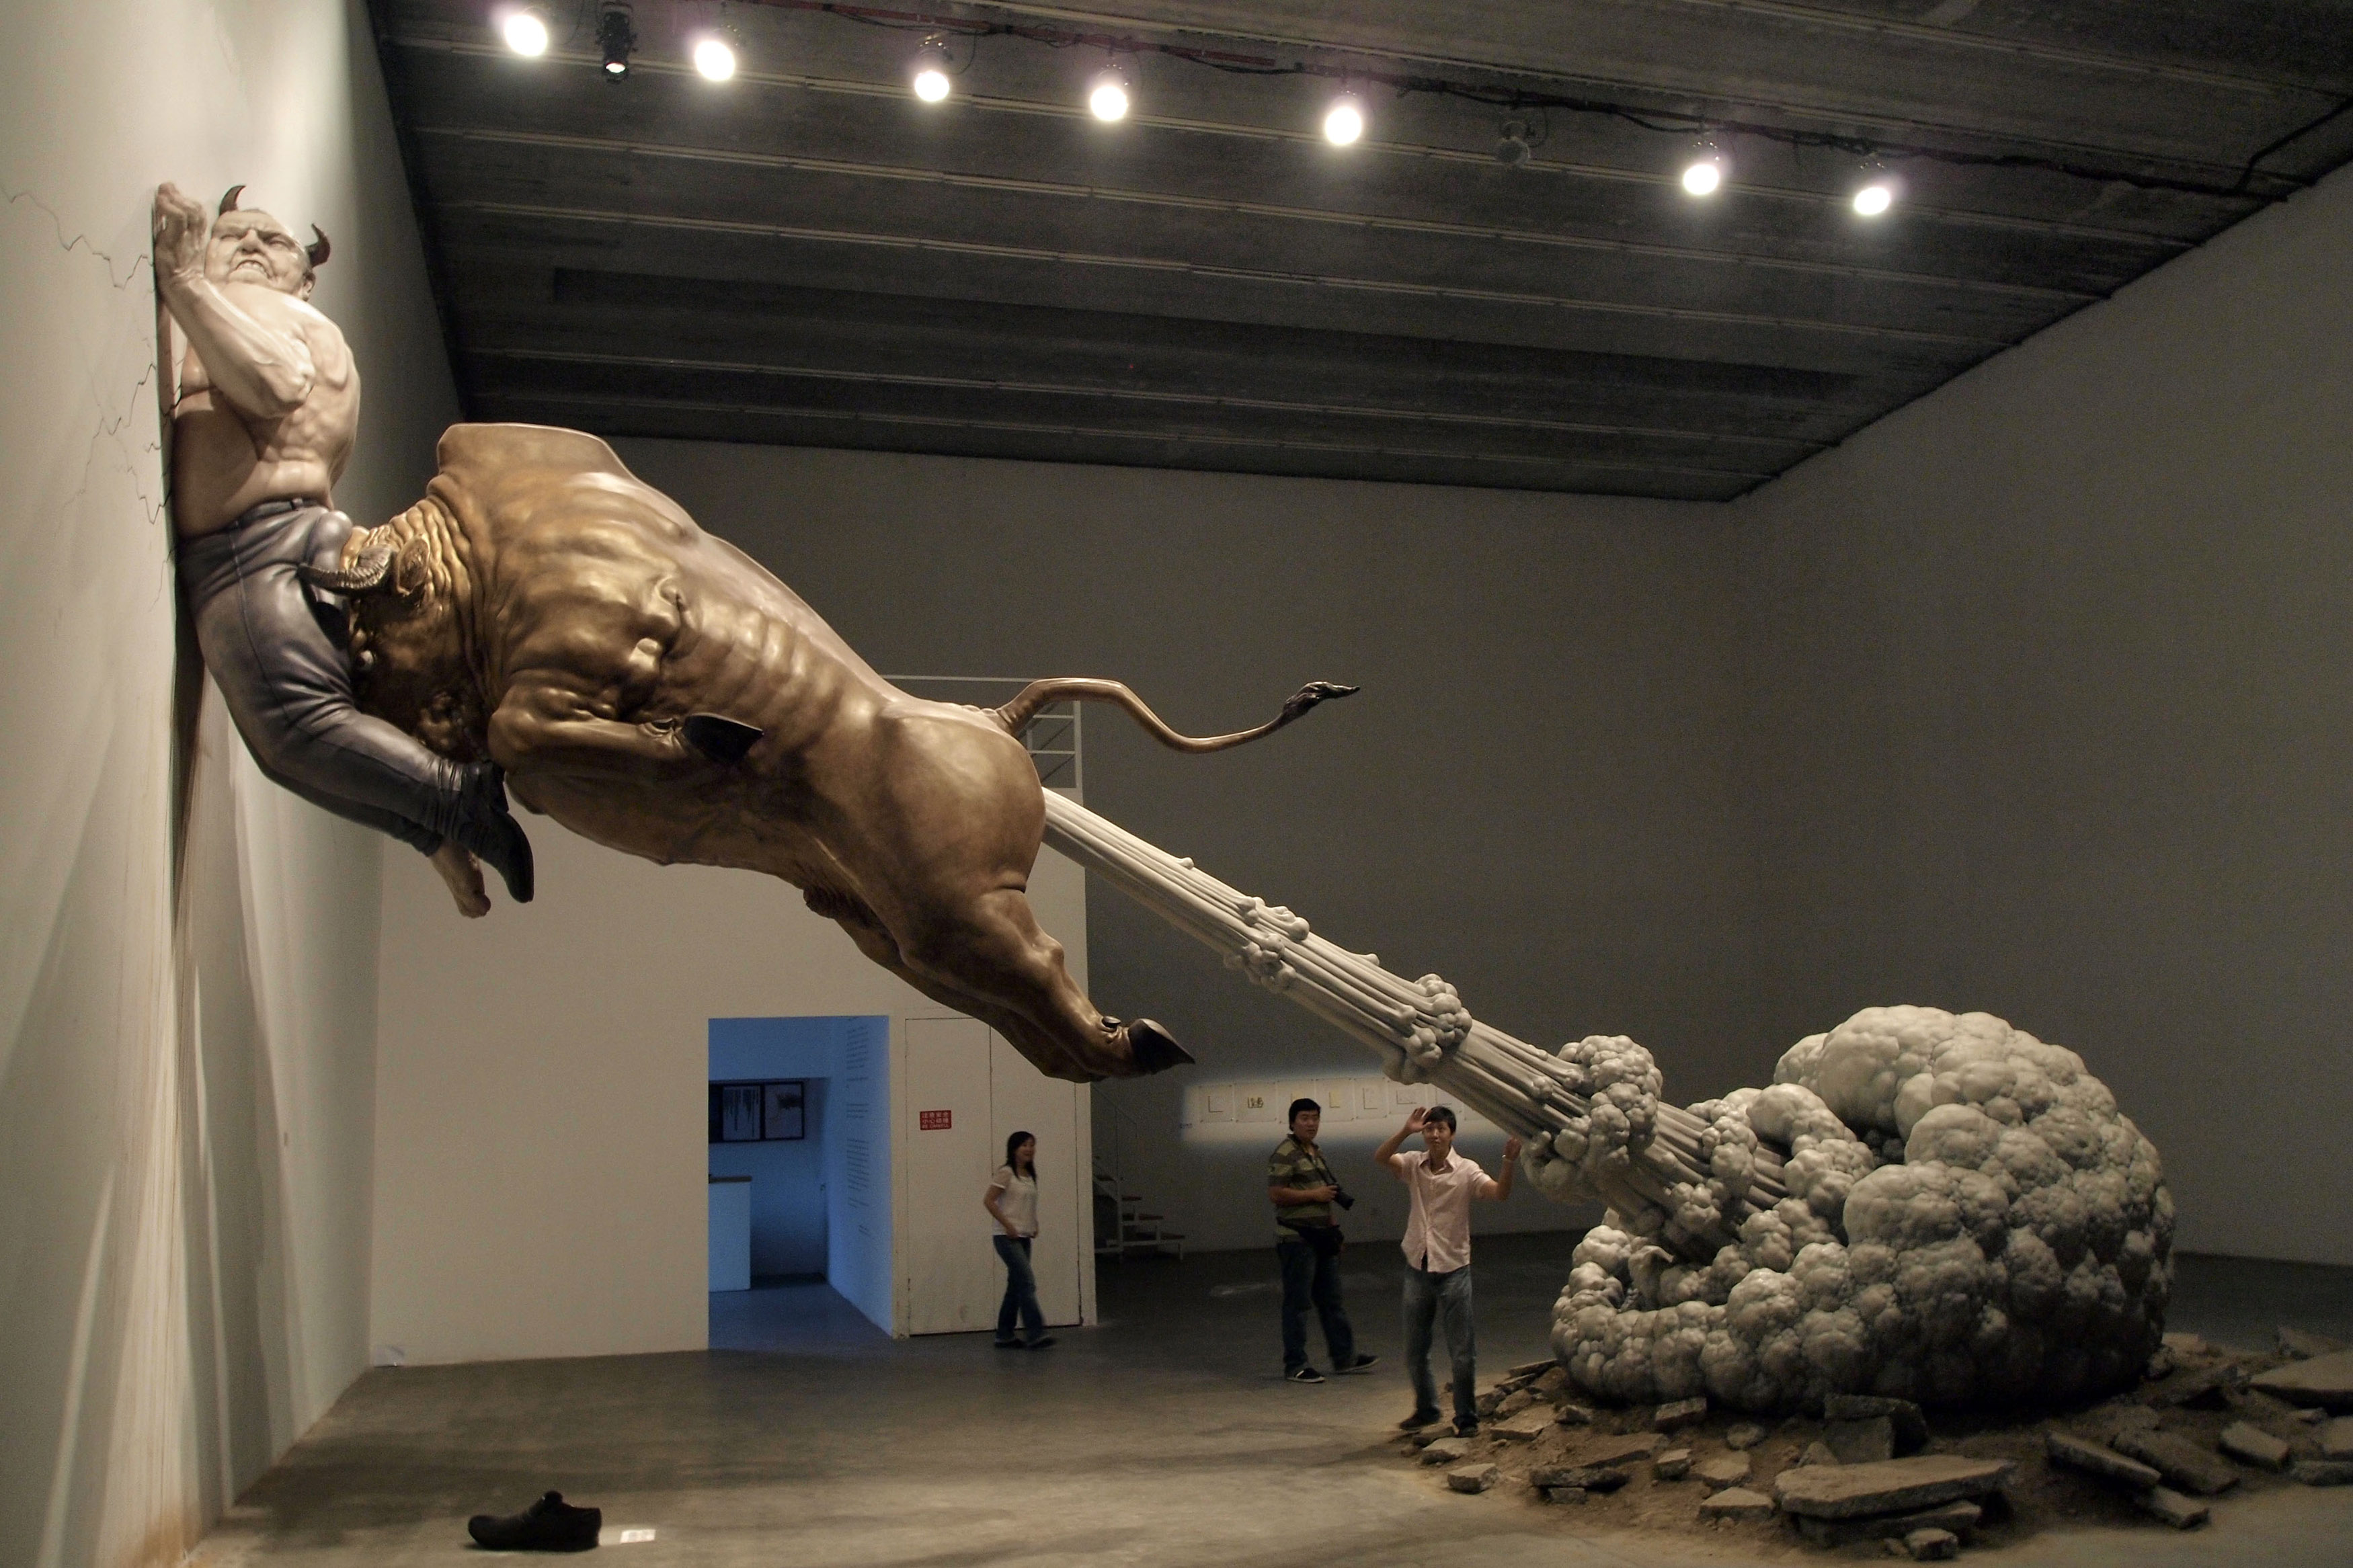 Chen Wenling's Bernie Madoff Art: Wall Street Villain Pinned To Wall ...